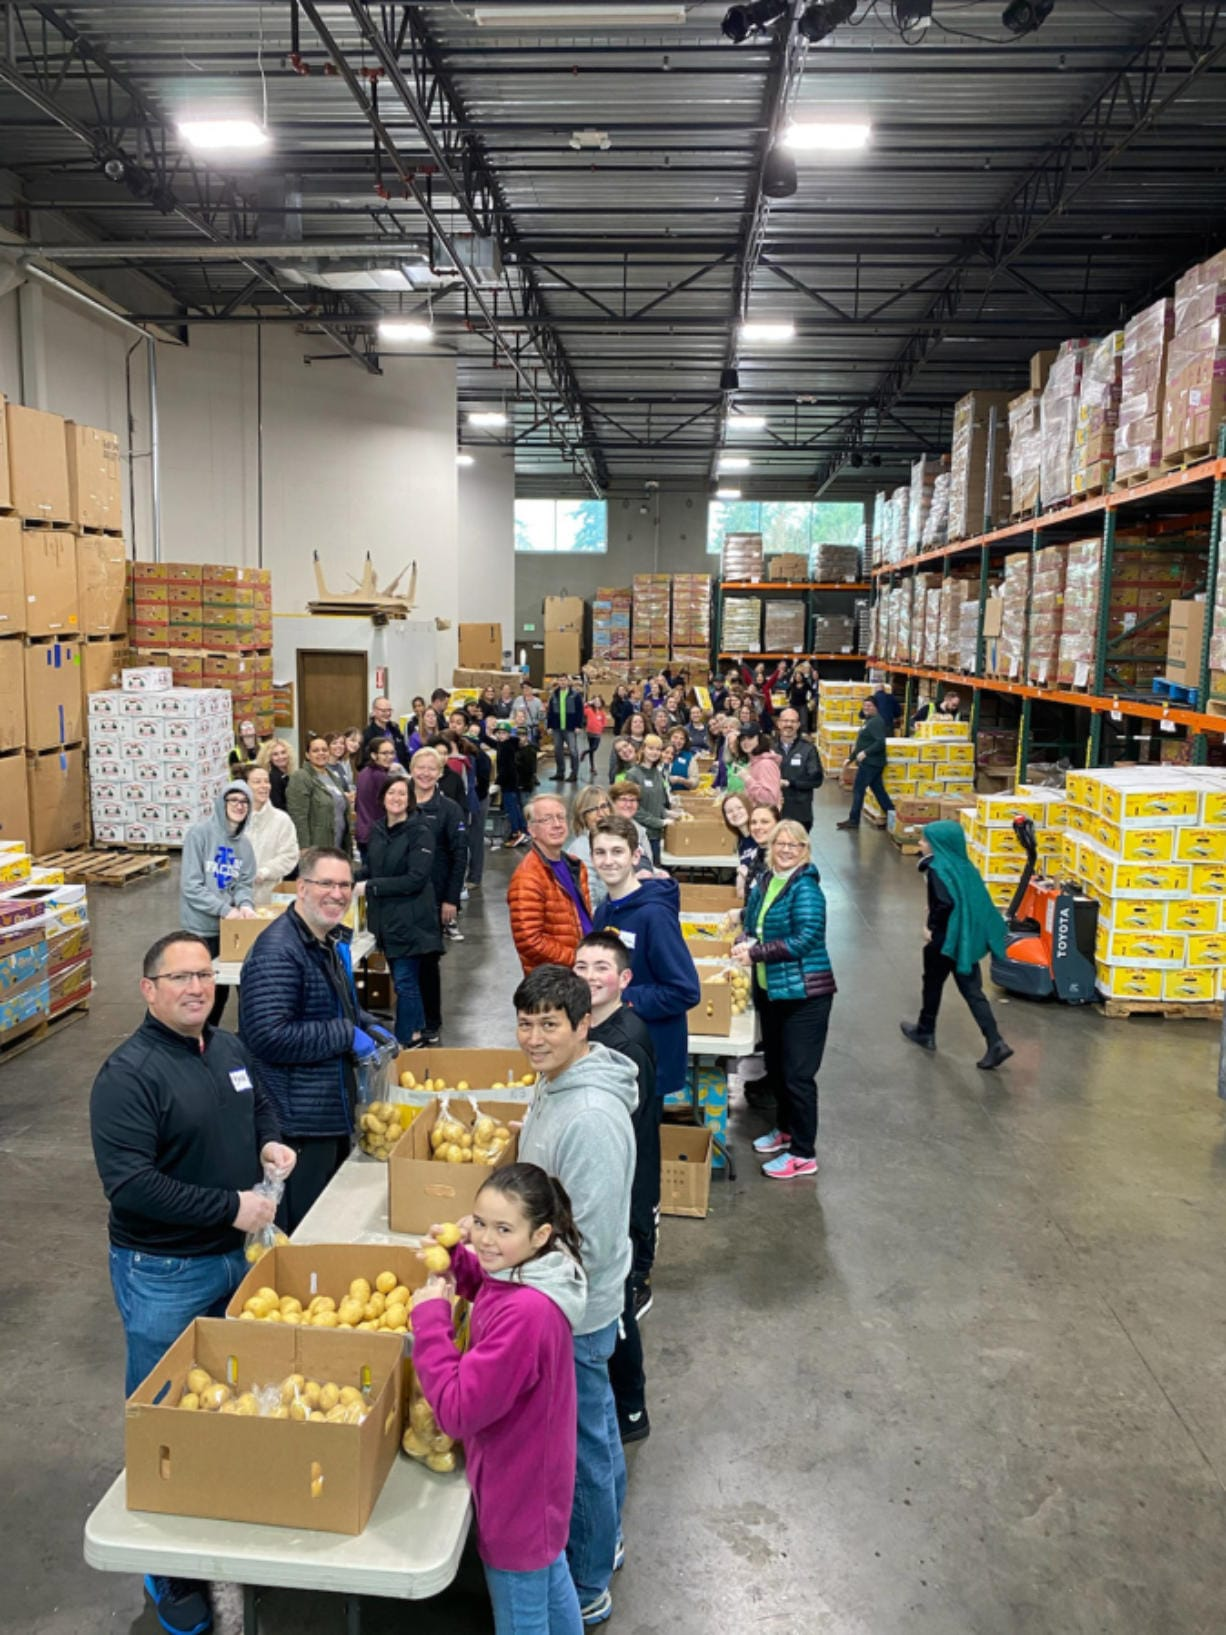 MINNEHAHA: More than 100 Kaiser Permanente employees from Southwest Washington and Oregon volunteered with their families and friends to sort 40,000 pounds of potatoes at the Clark County Food Bank on Martin Luther King Jr.